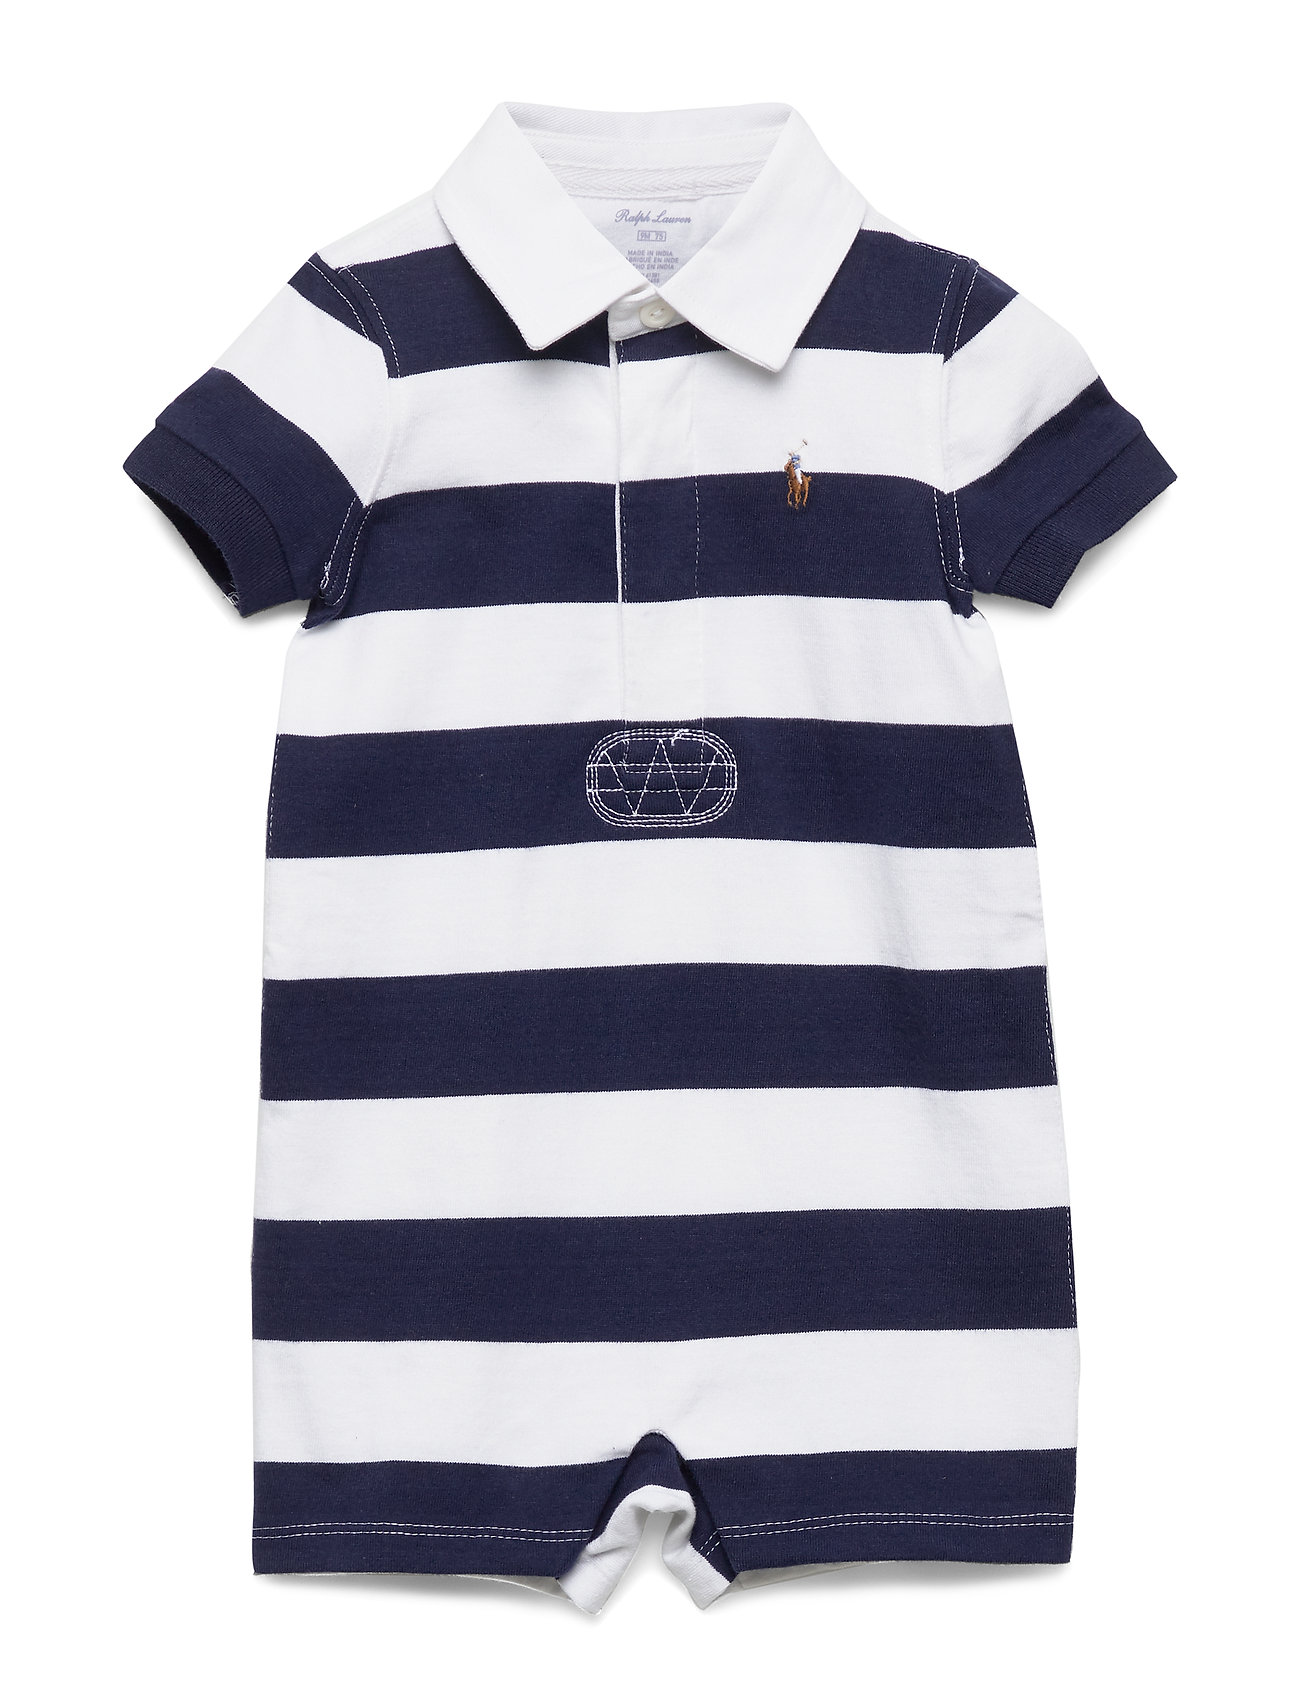 Ralph Lauren Baby Striped Cotton Rugby Shortall - FRENCH NAVY MULTI